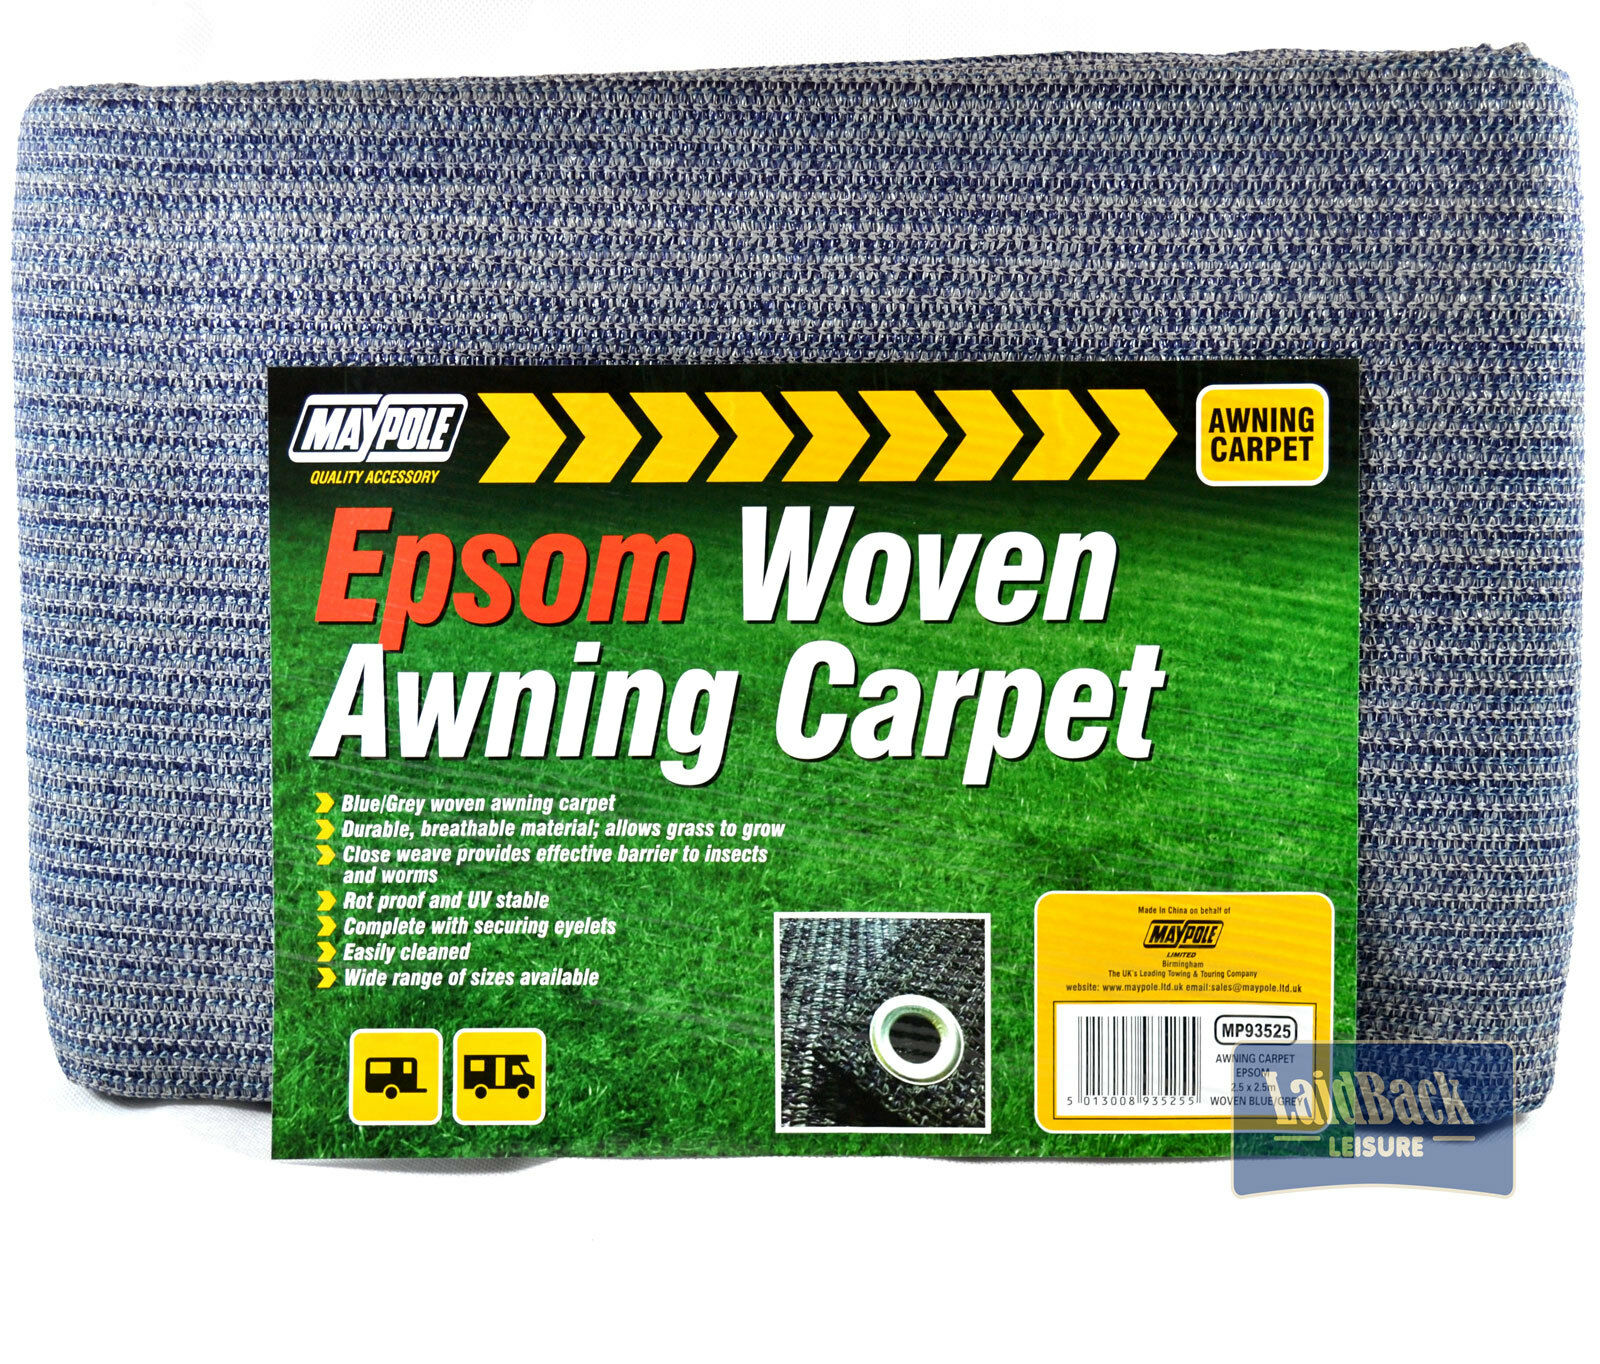 Epson Woven Quality Awning Carpet ✔ ✔ ✔ Breathable  ✔ Durable  ✔ Wide range of Größes c66fcf